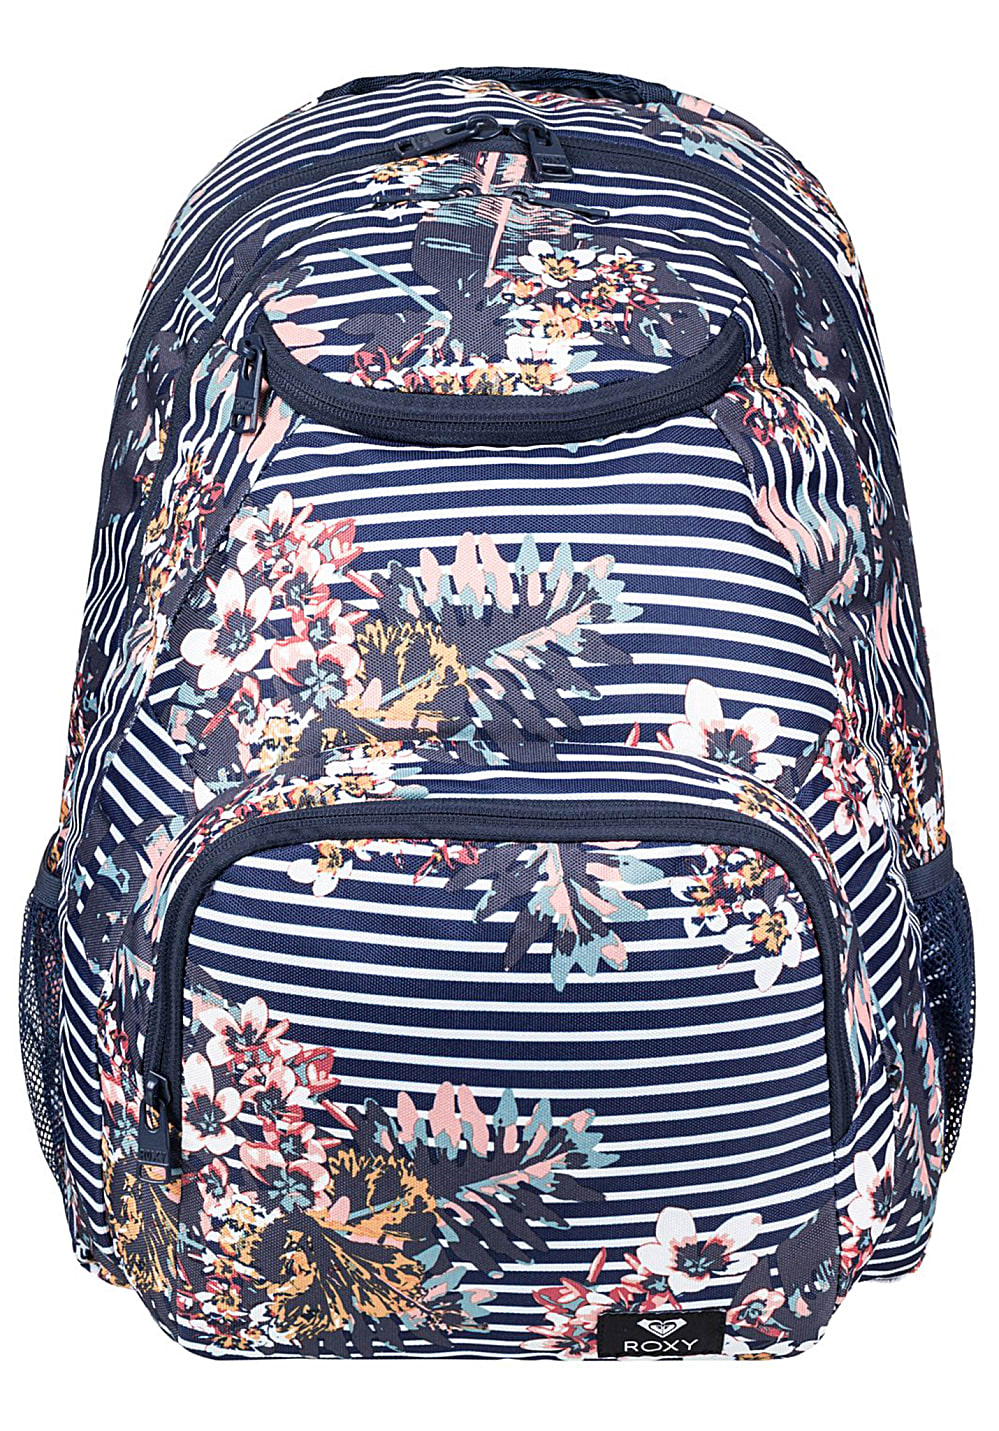 566f6b03eb3 Roxy Shadow Swell - Backpack for Women - Blue